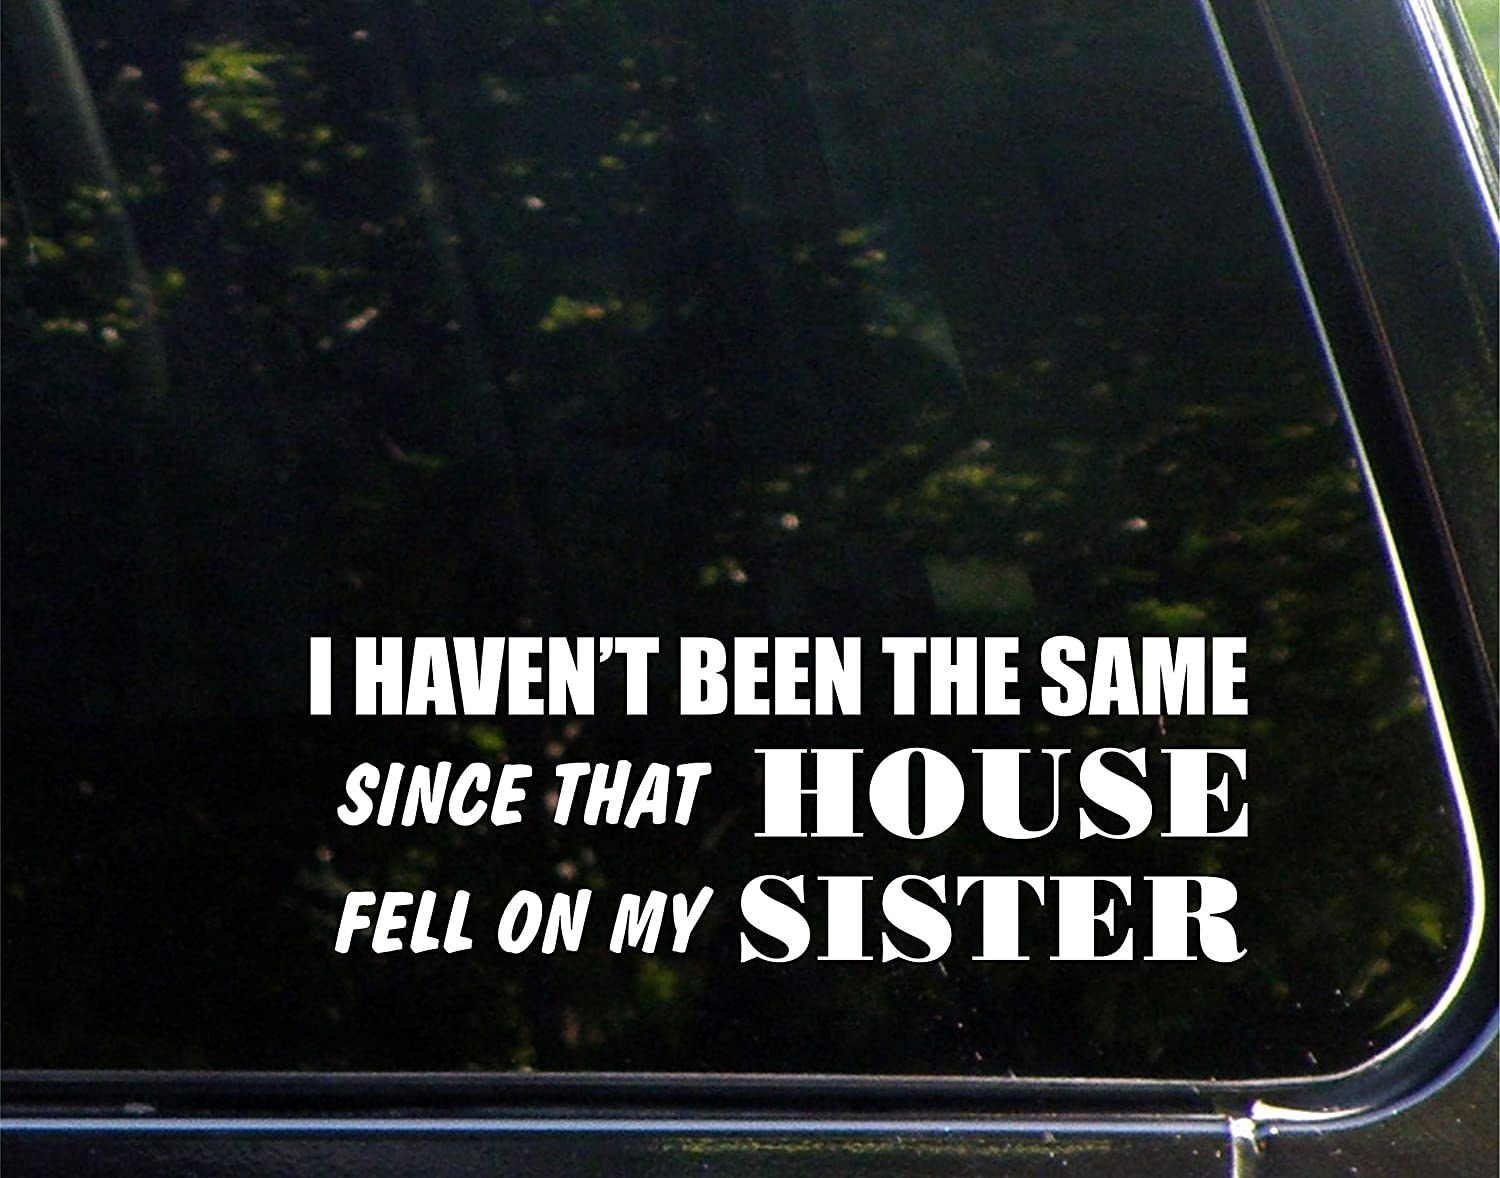 """I Haven't Been The Same Since That House Fell On My Sister - 8-3/4"""" x 3"""" - Vinyl Die Cut Decal/Bumper Sticker for Windows, Cars, Trucks, Laptops, Etc."""